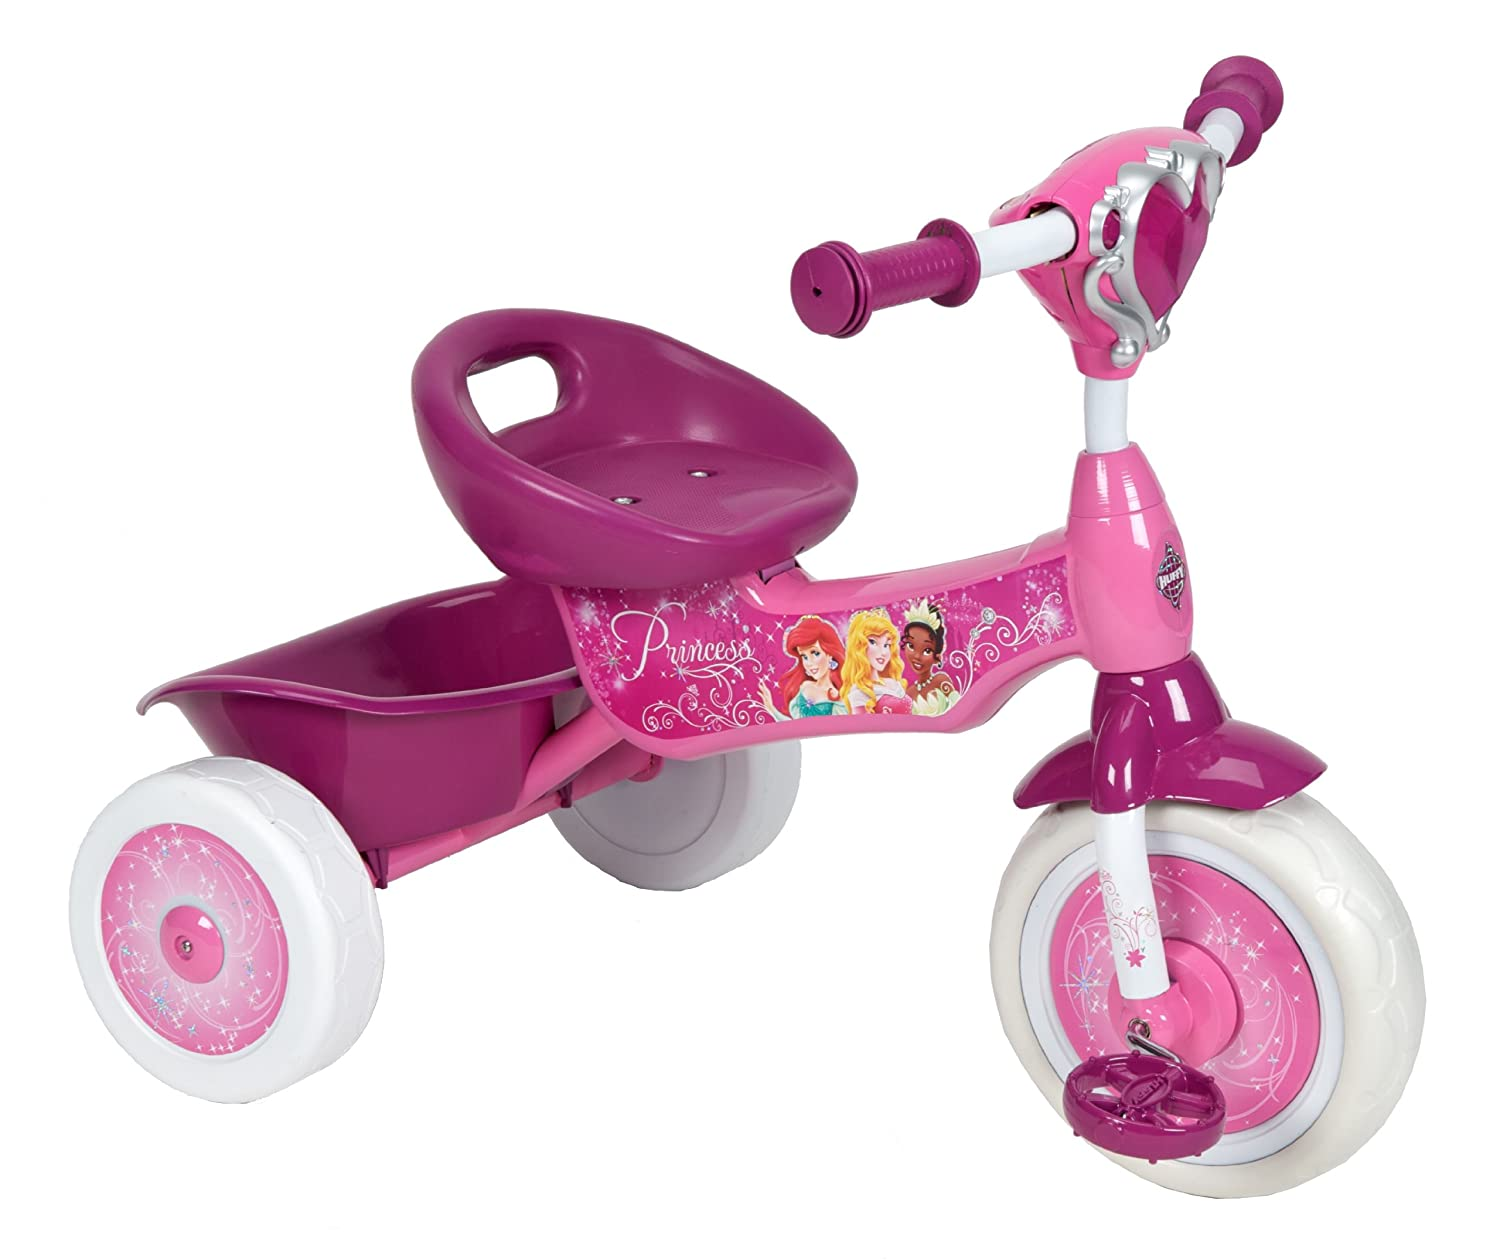 Disney Princess Pedal Trike